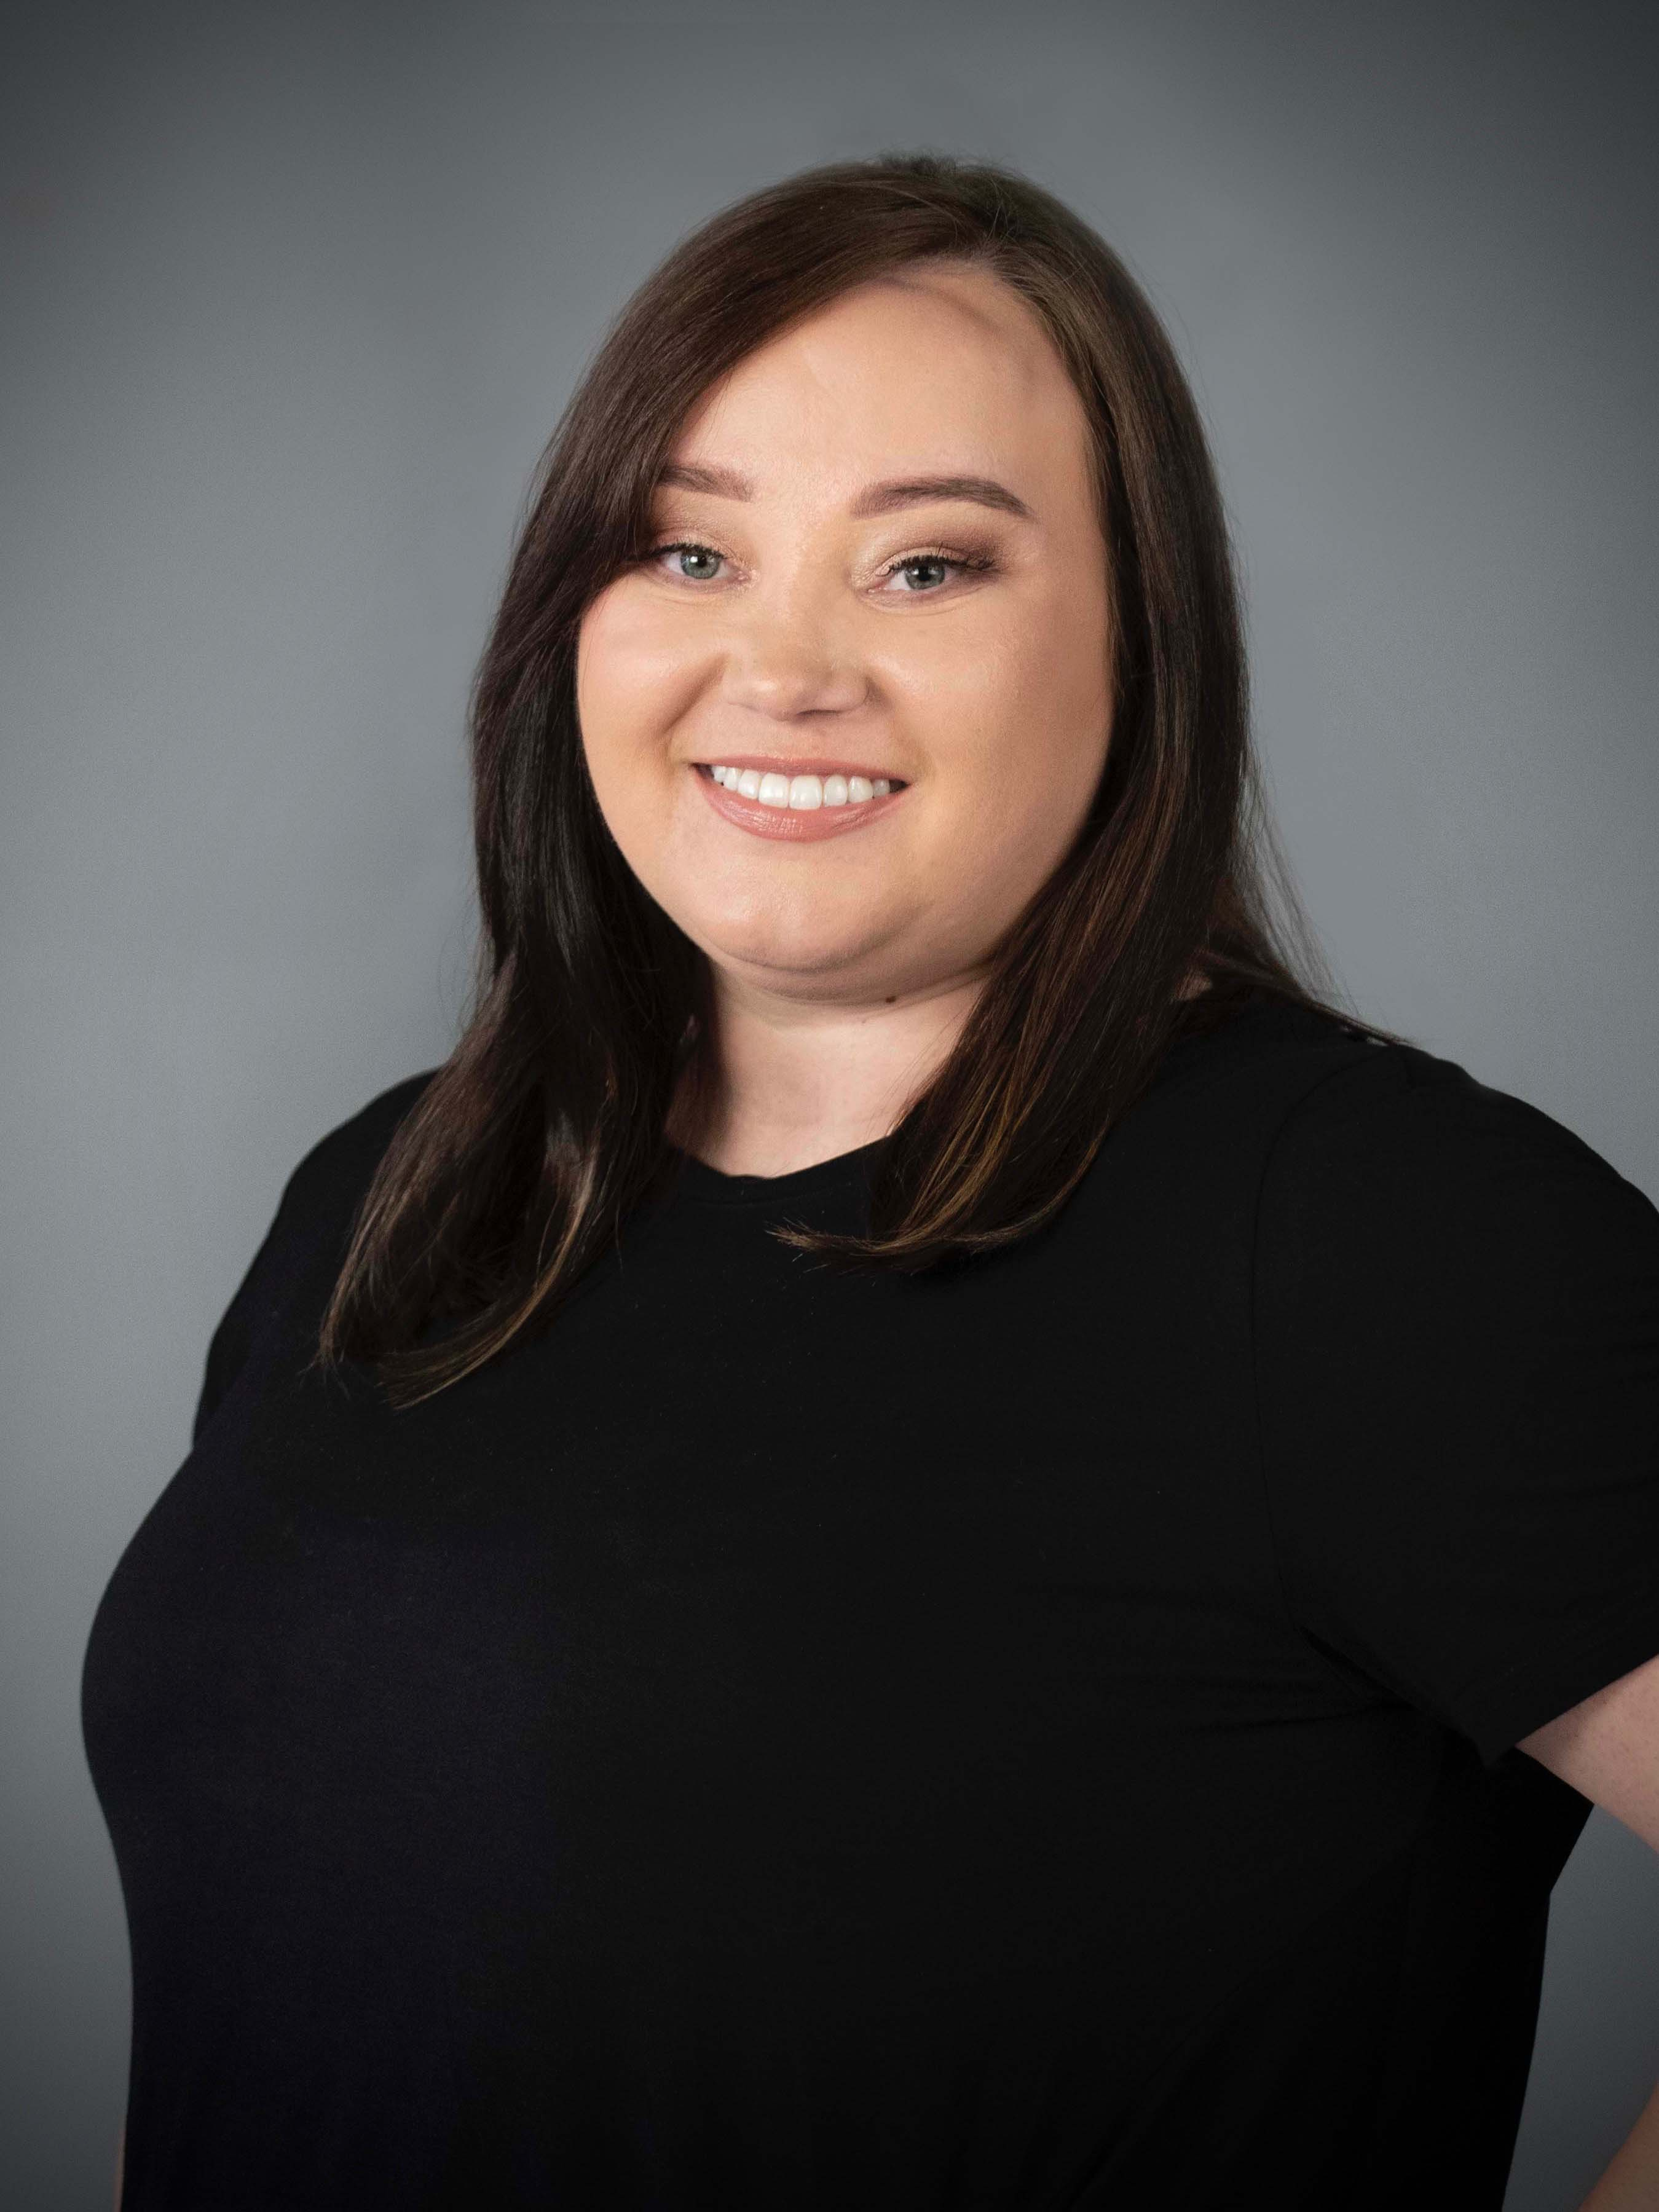 Alissa Graves - Turner Behringer Property Manager